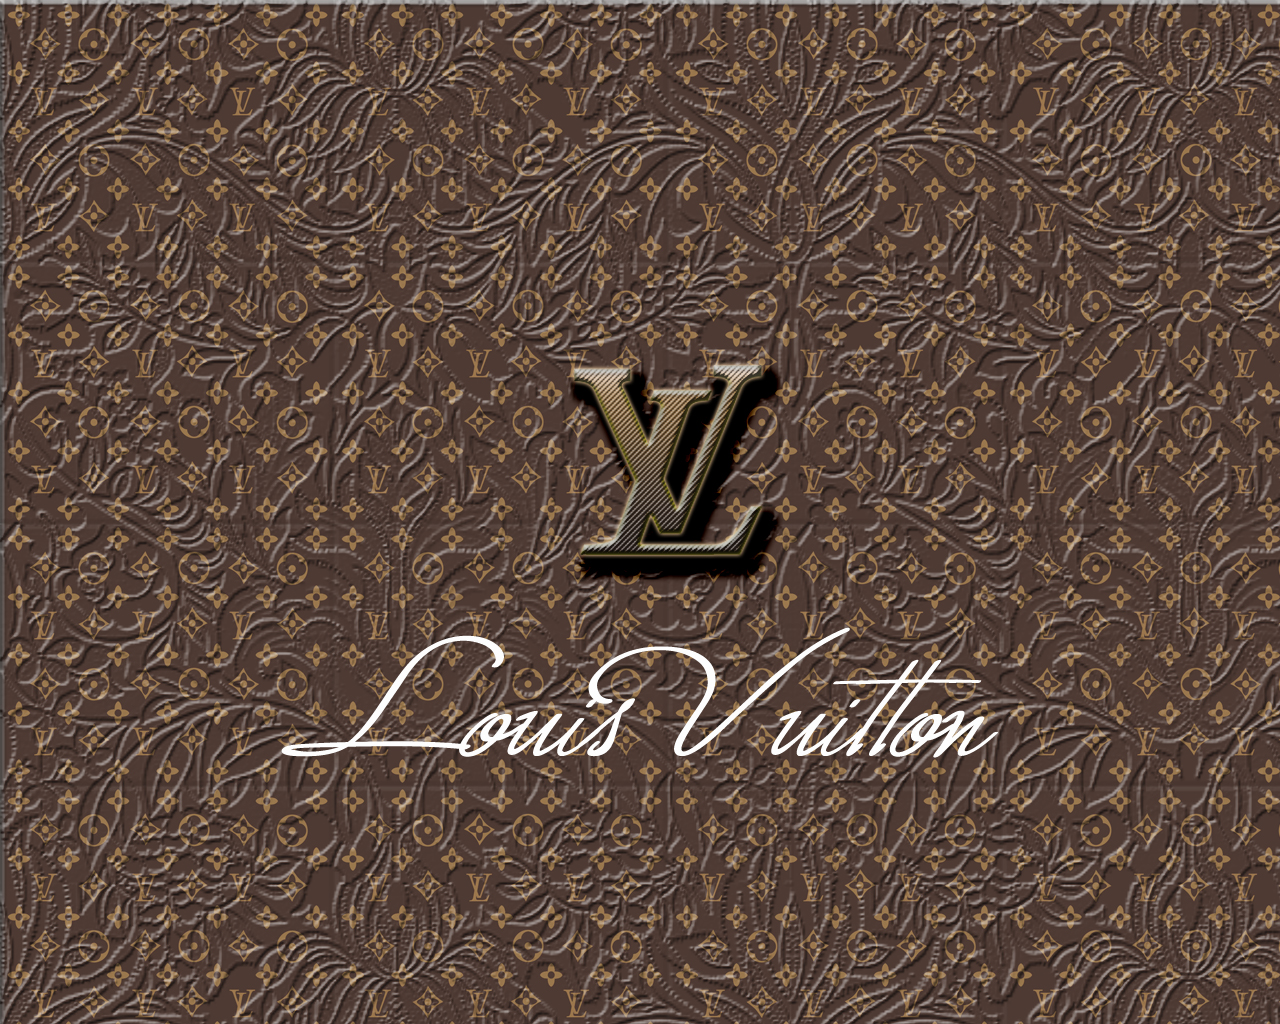 Wallpaper iphone louis vuitton - Wallpaper Iphone Louis Vuitton Logo 320x480 Iphone Mobile Wallpaper